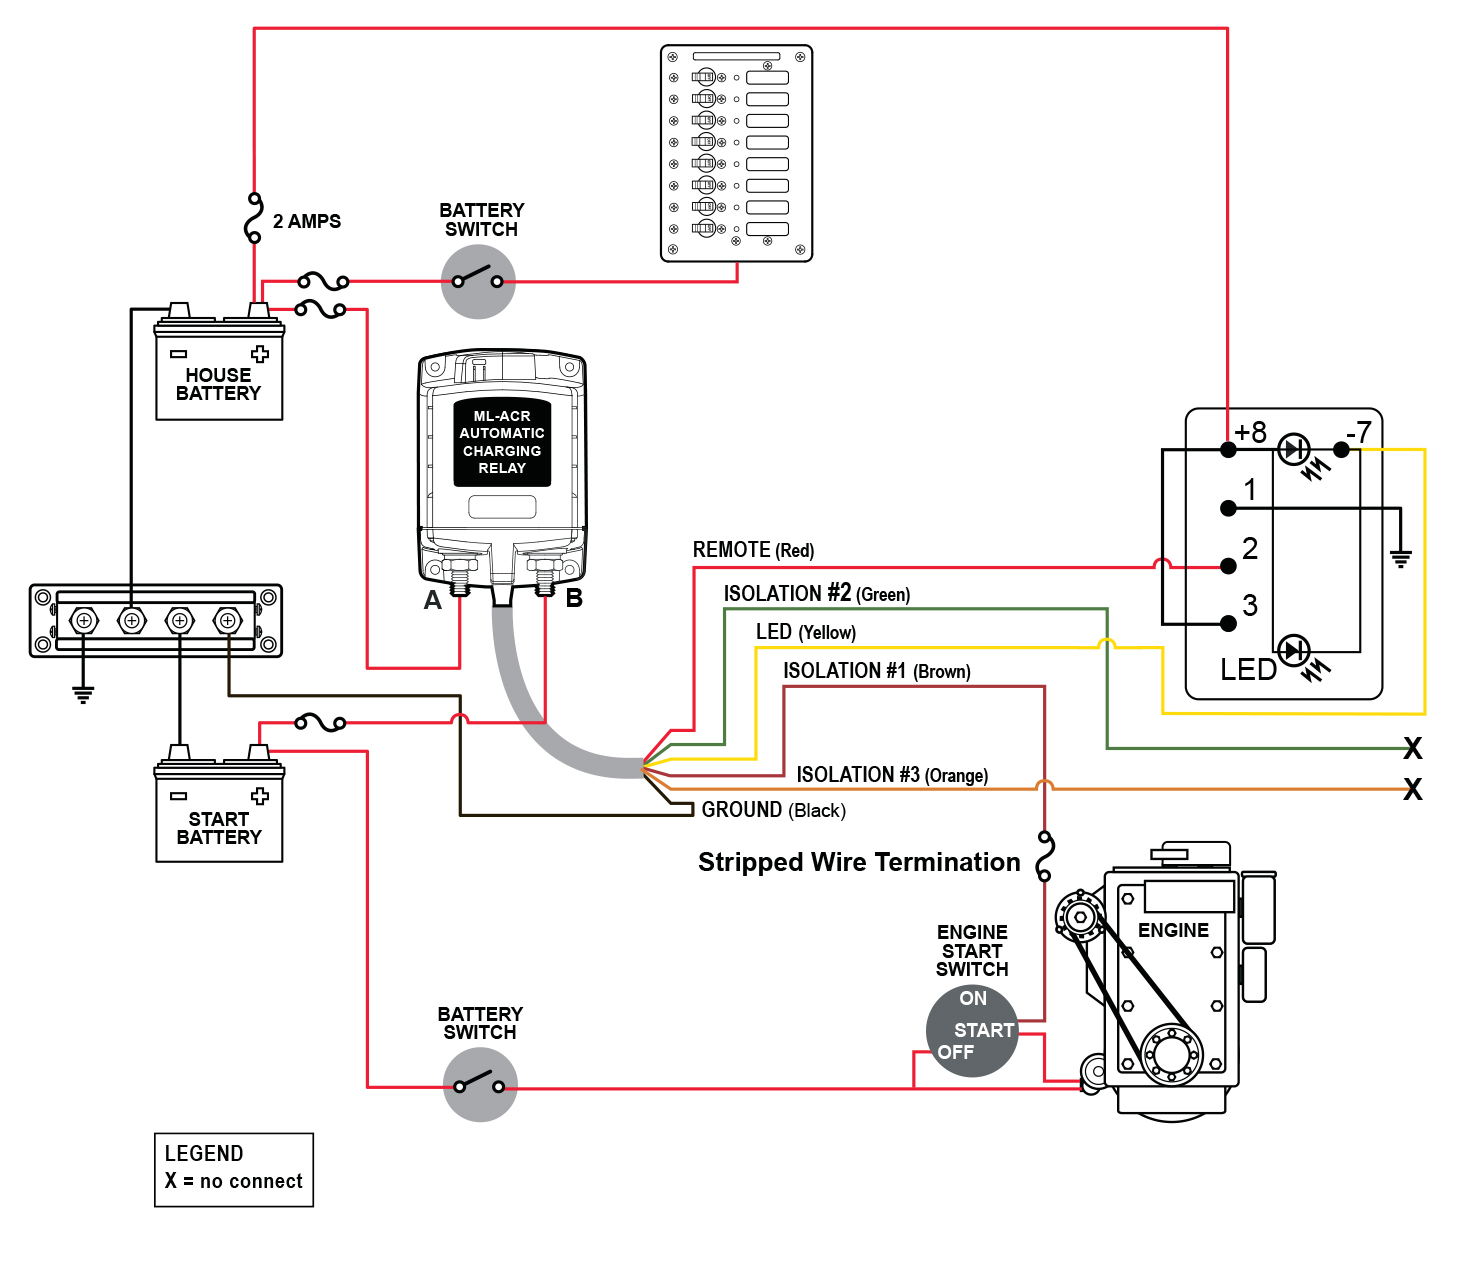 small resolution of blue sea ml acr automatic charging relay wiring diagram